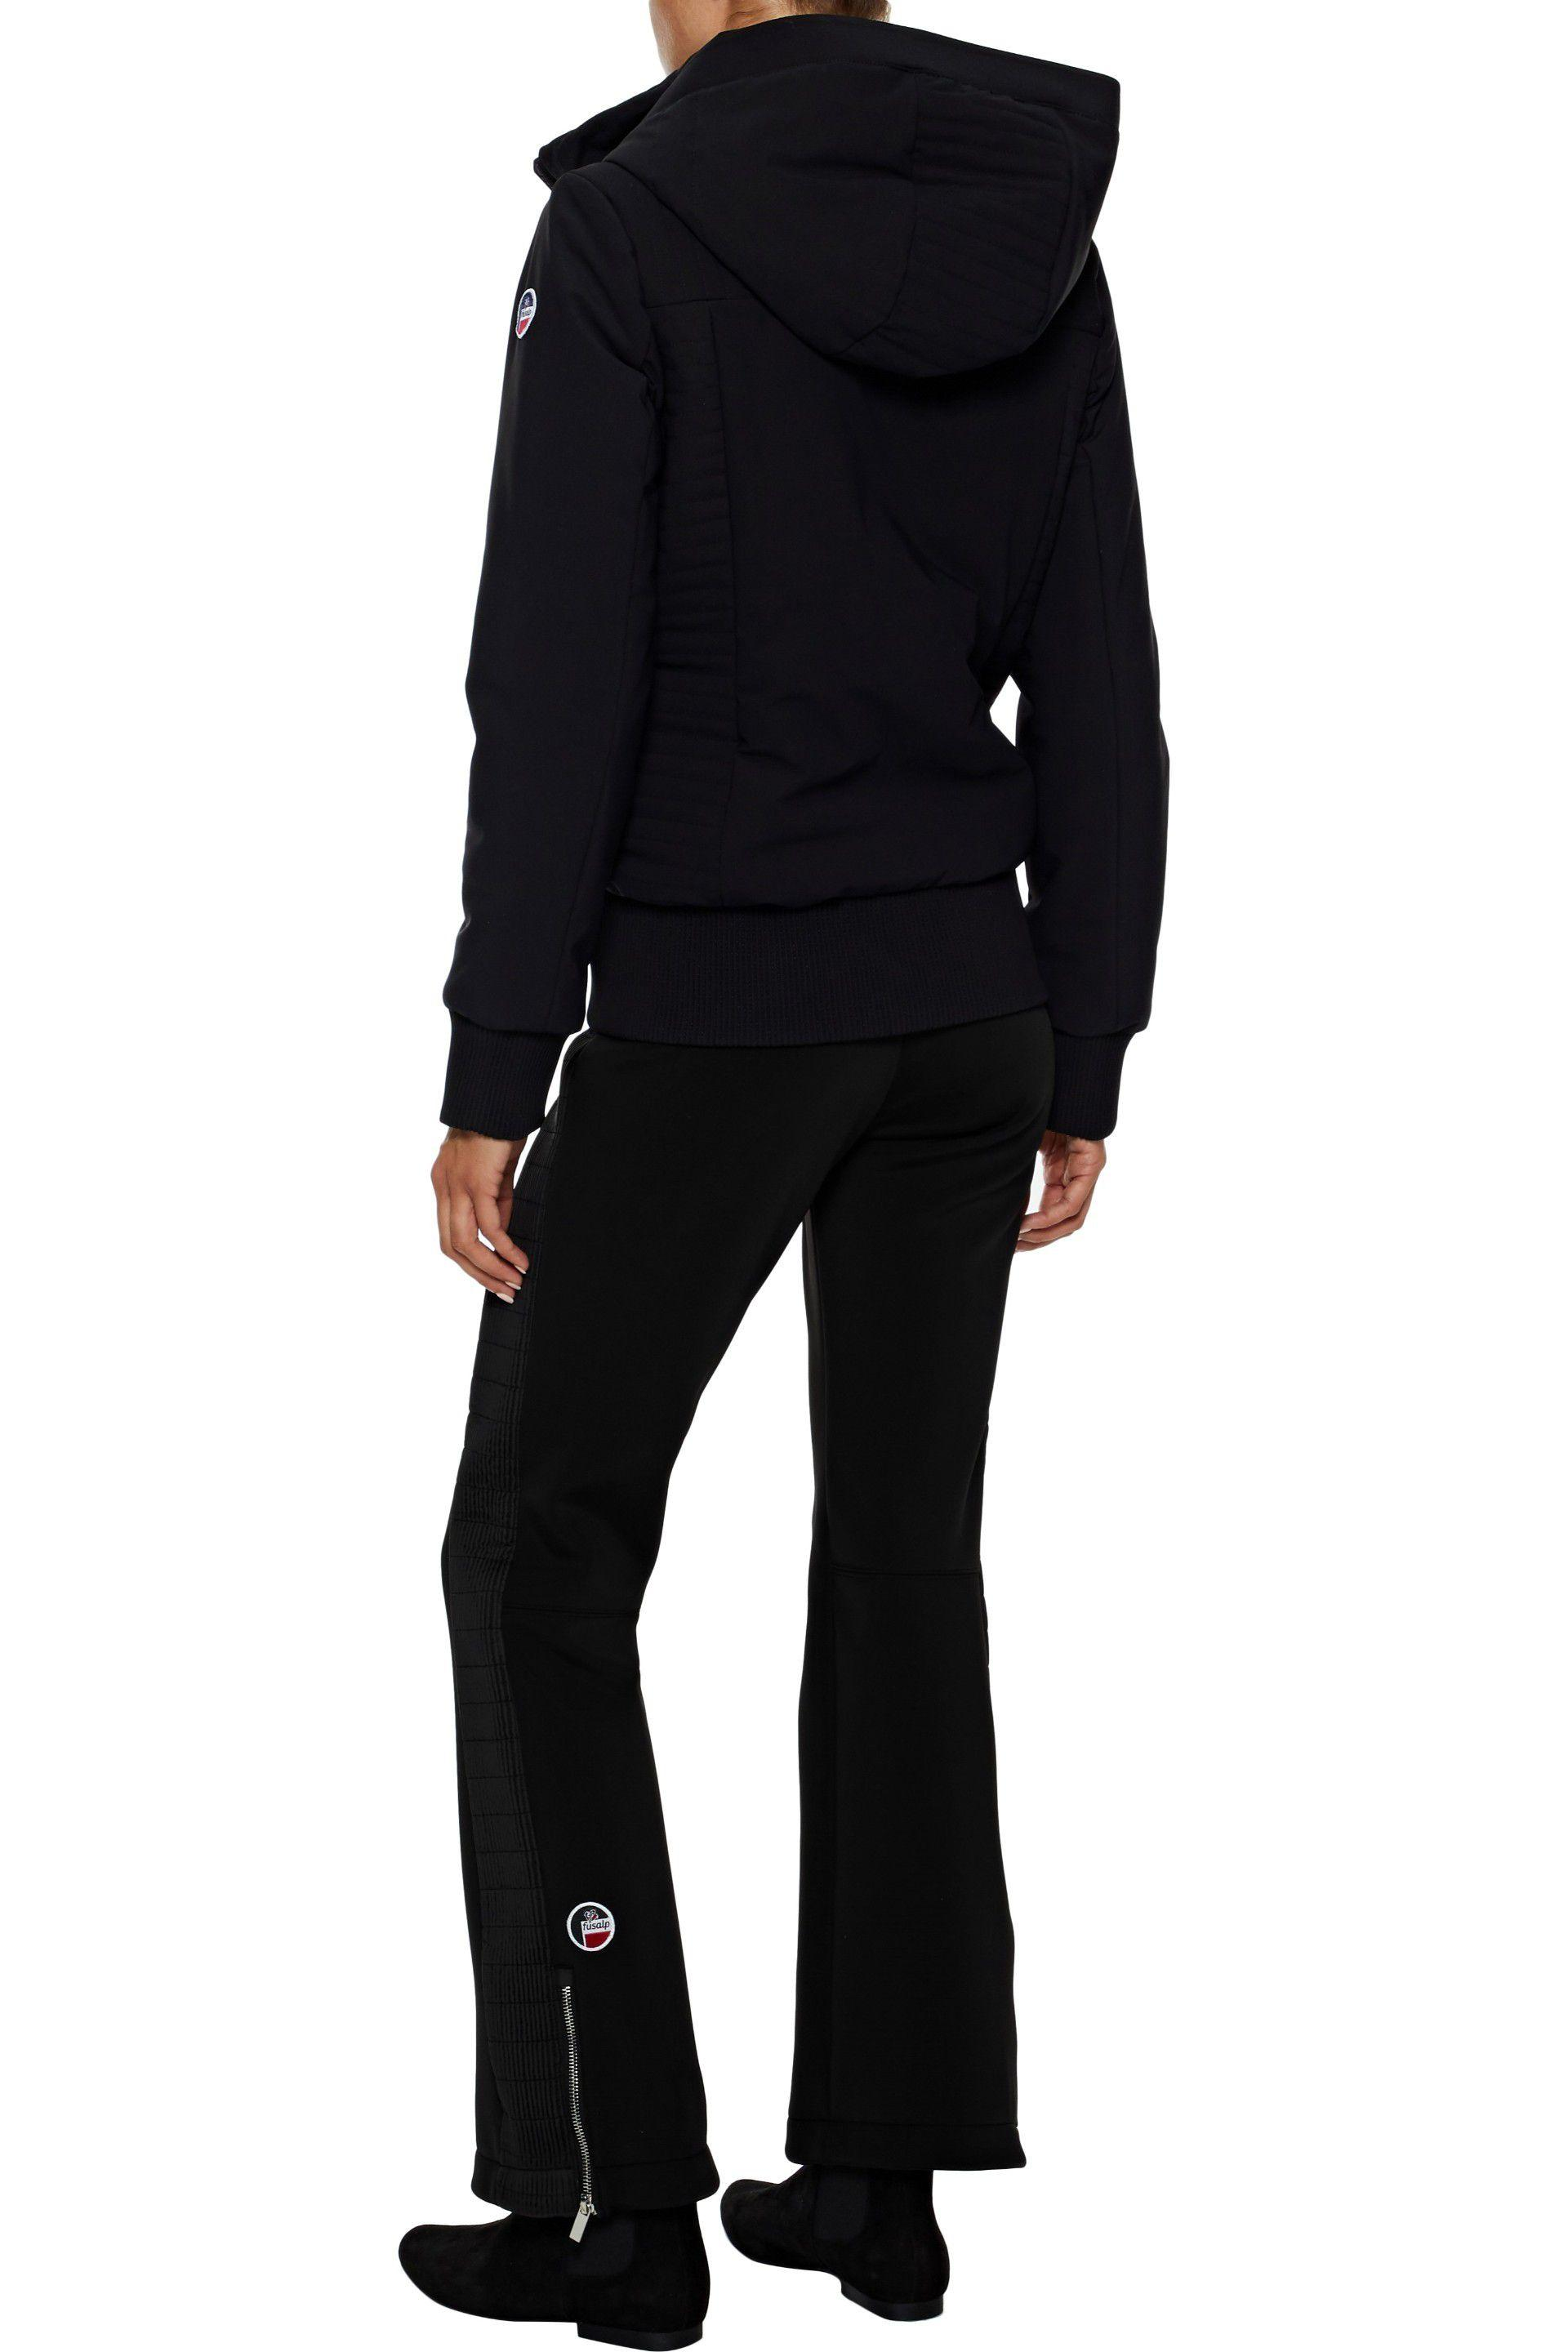 Fusalp Woman Quilted Shell Ski Pants Black in Black Lyst